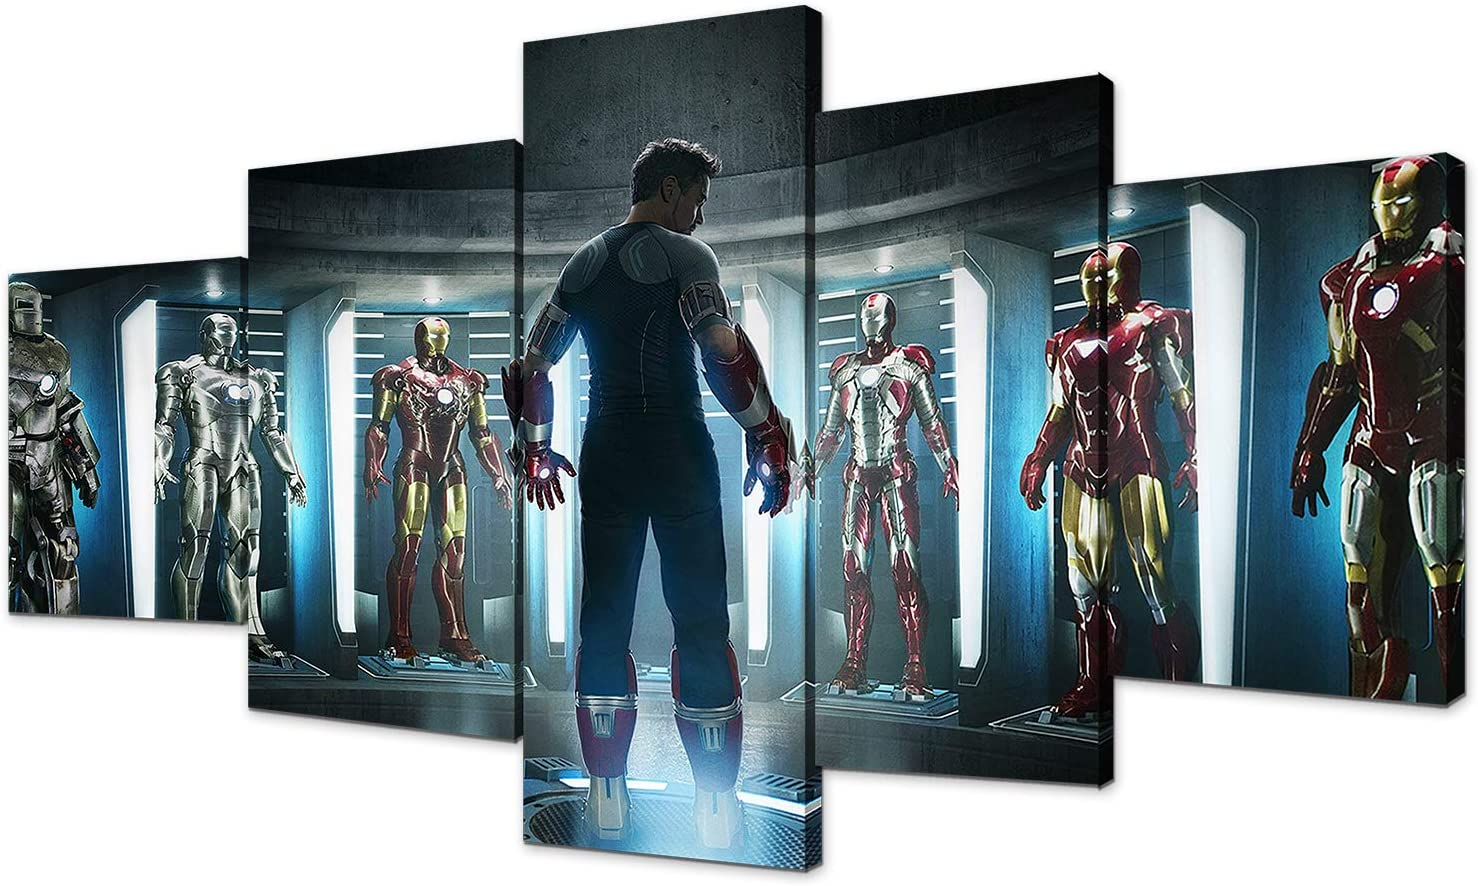 Iron Man 3 Movie Poster Marvel Avengers Iron Man Mark 1-43 Prints on Canvas Wall Art for Living Room Decor Boy Gift(With Frame, Avengers13)